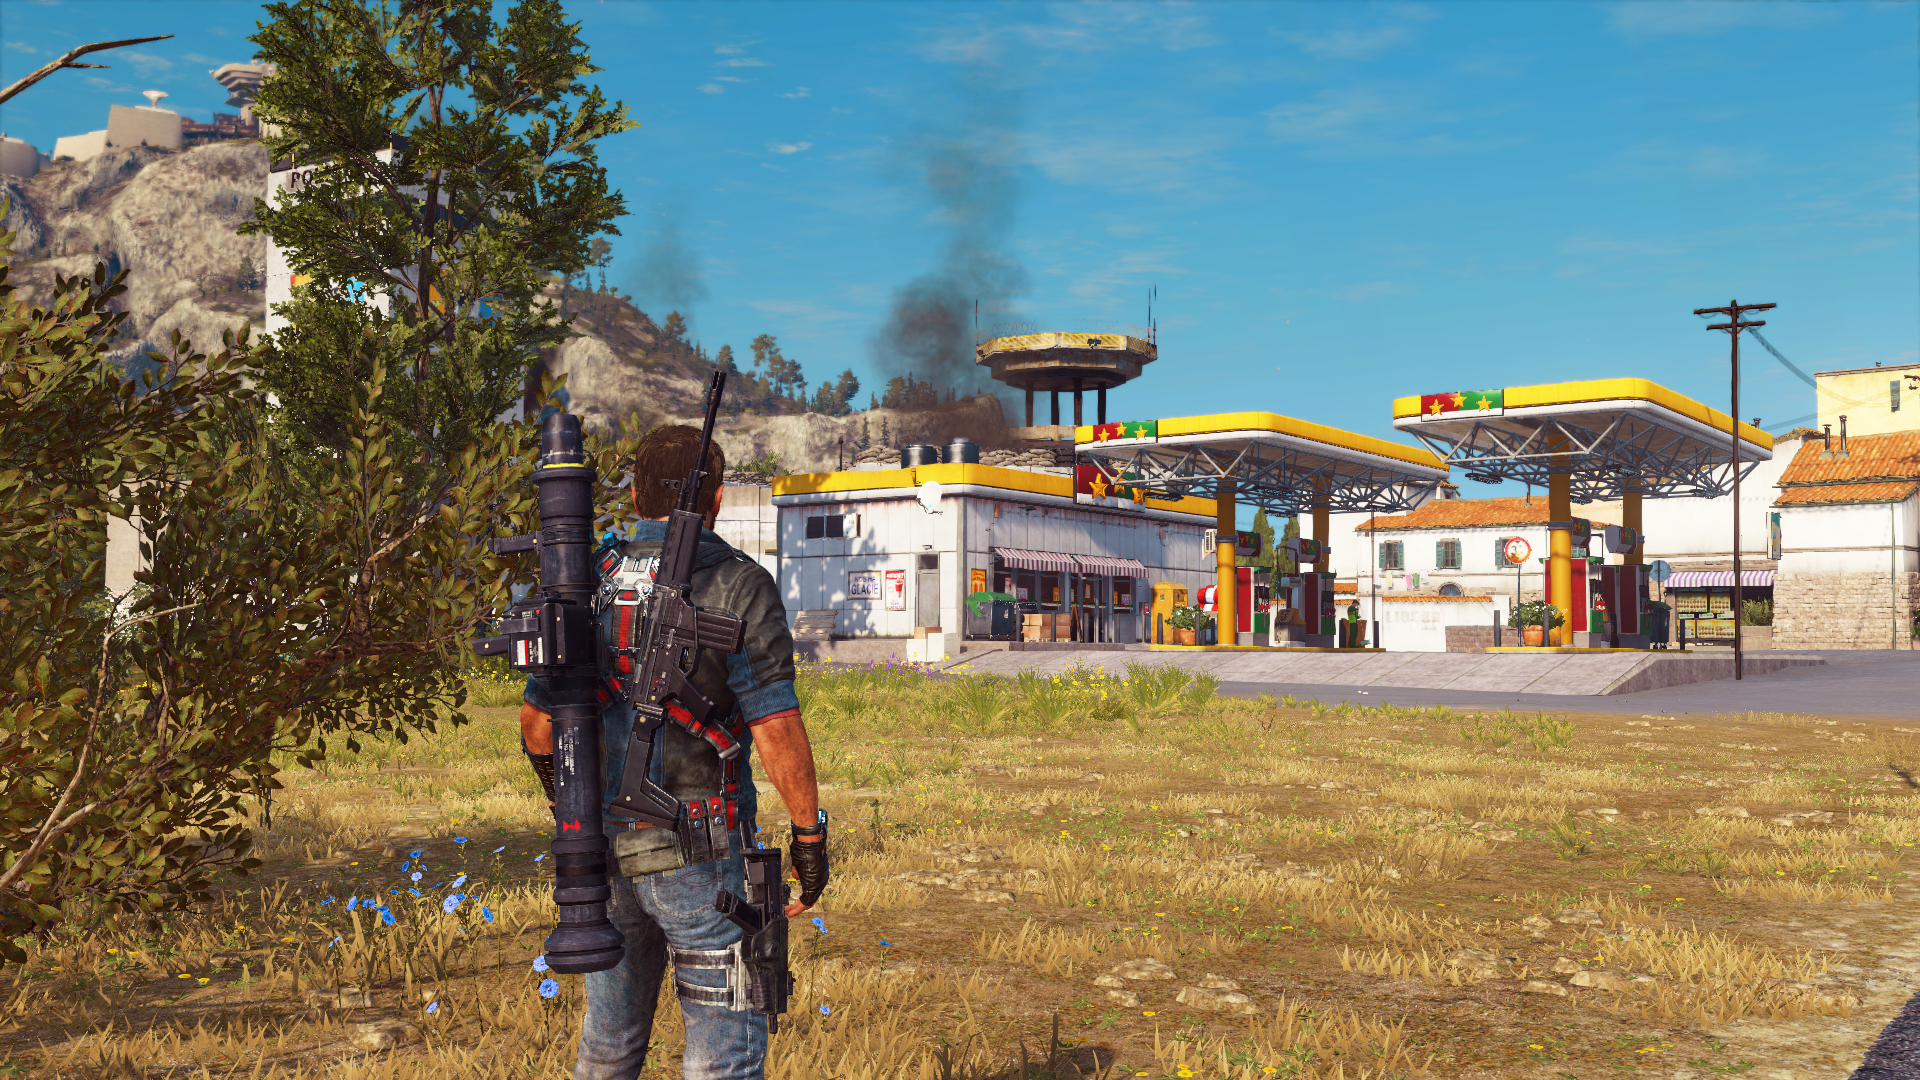 1366x368 Resolution Vs 1600x900: GeForce.com Just Cause 3 NVIDIA Dynamic Super Resolution